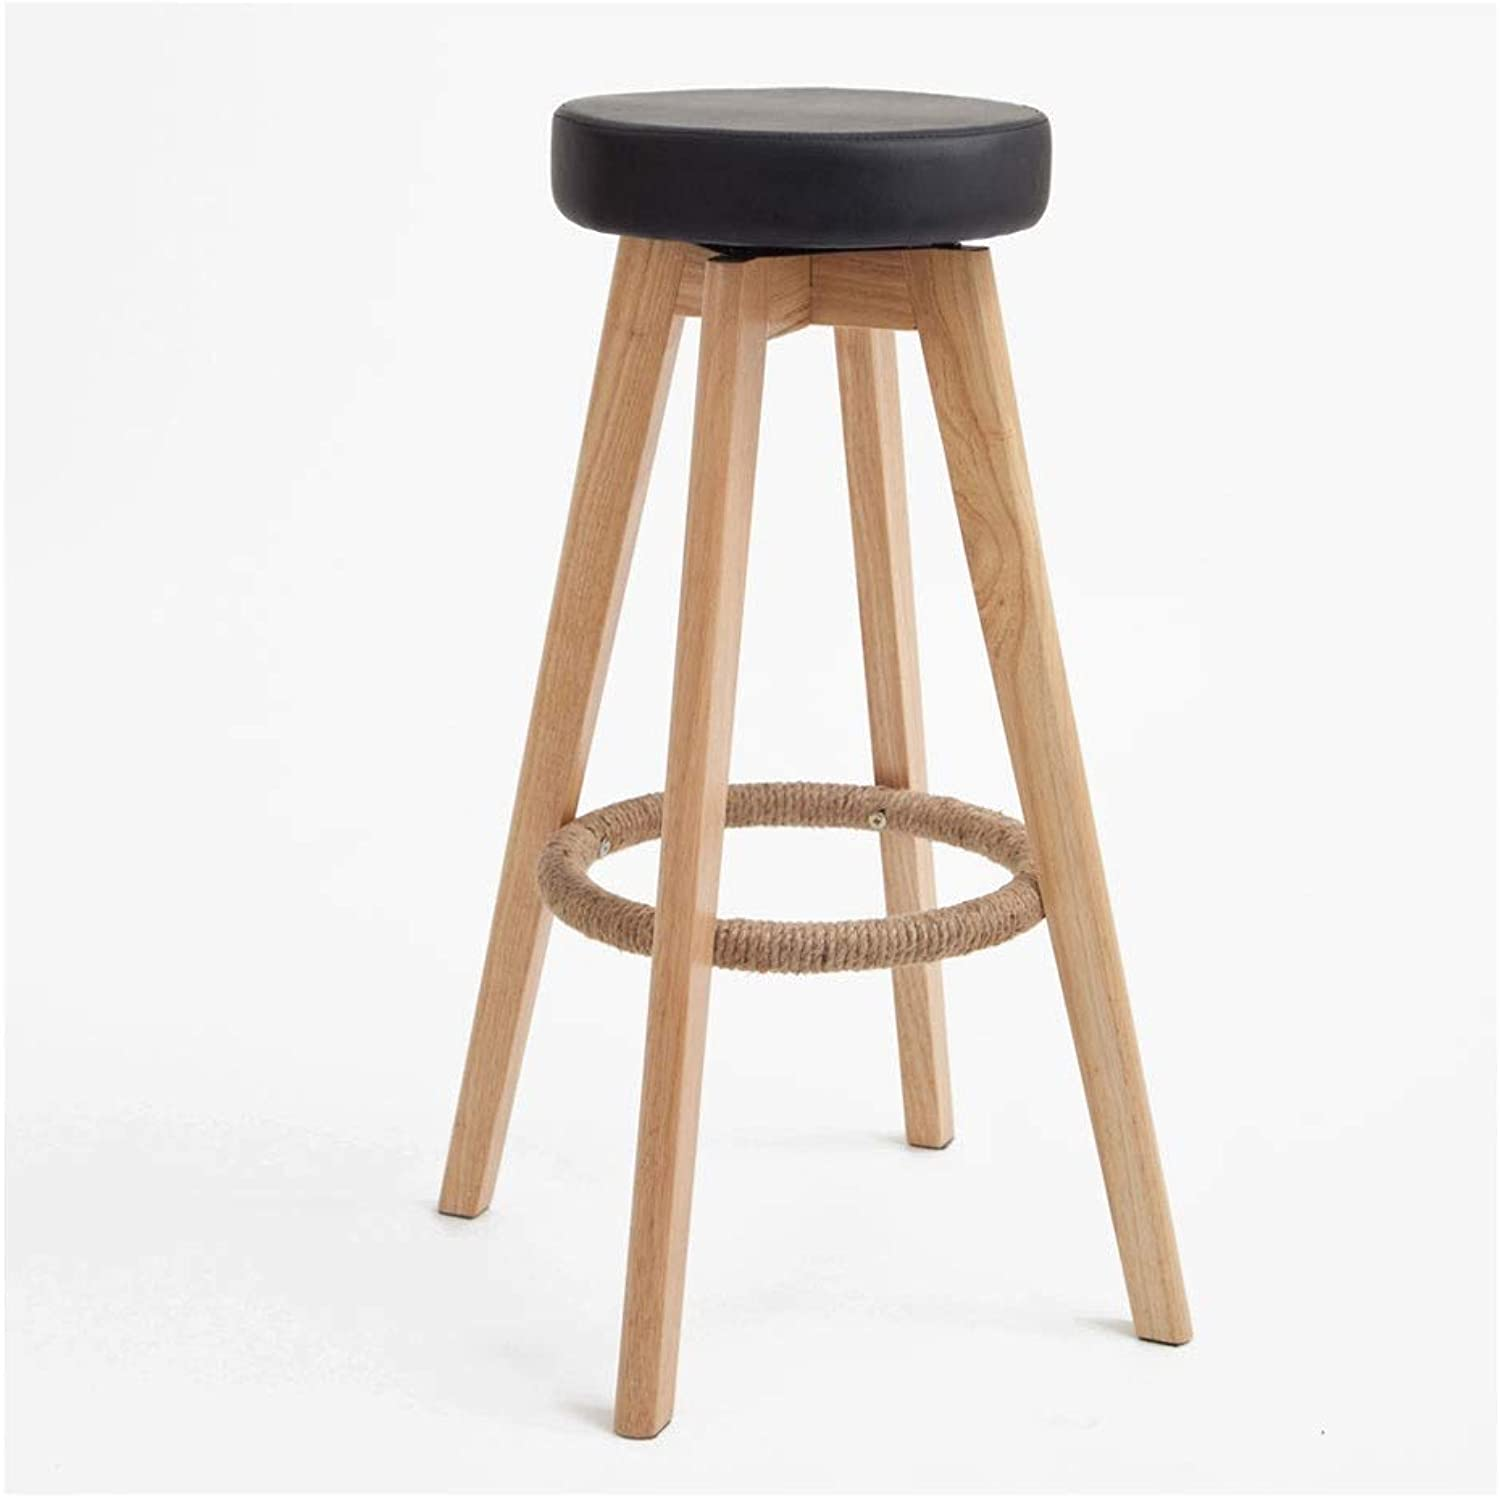 A+ Home Simple Bar Stool, Solid Wood High Resilience Sponge Filled Bar Stool, Natural Wood Grain High Chair, 5 colors,PU Leather Easy to Clean-48cm74cm (color   Black)